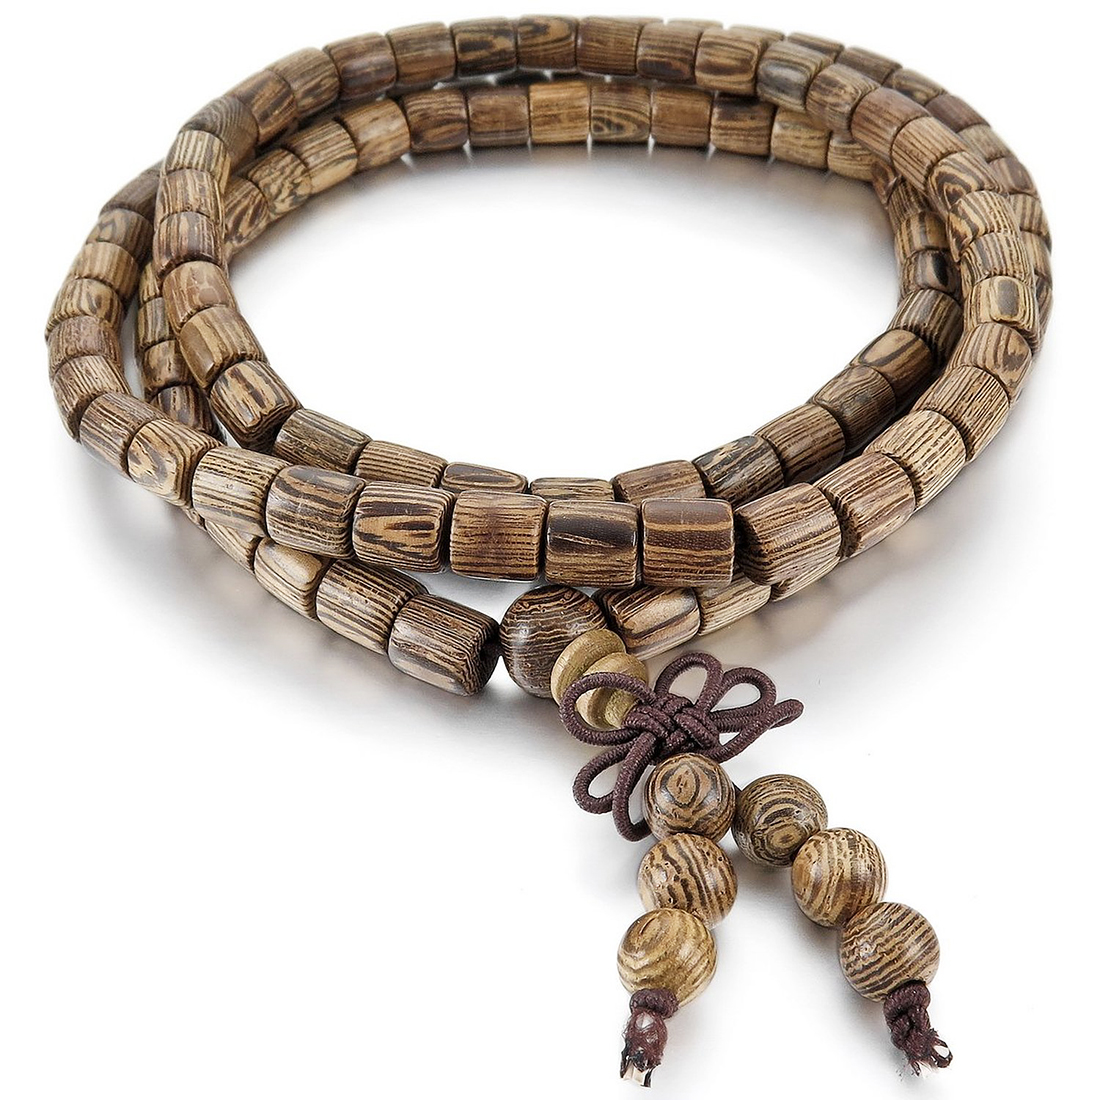 6mm Wood Bracelets Wrist Bracelet Links Tibetan Buddhist Brown Buddha Beads Prayer Prayer Chinese Knot Elastic Man, Woman